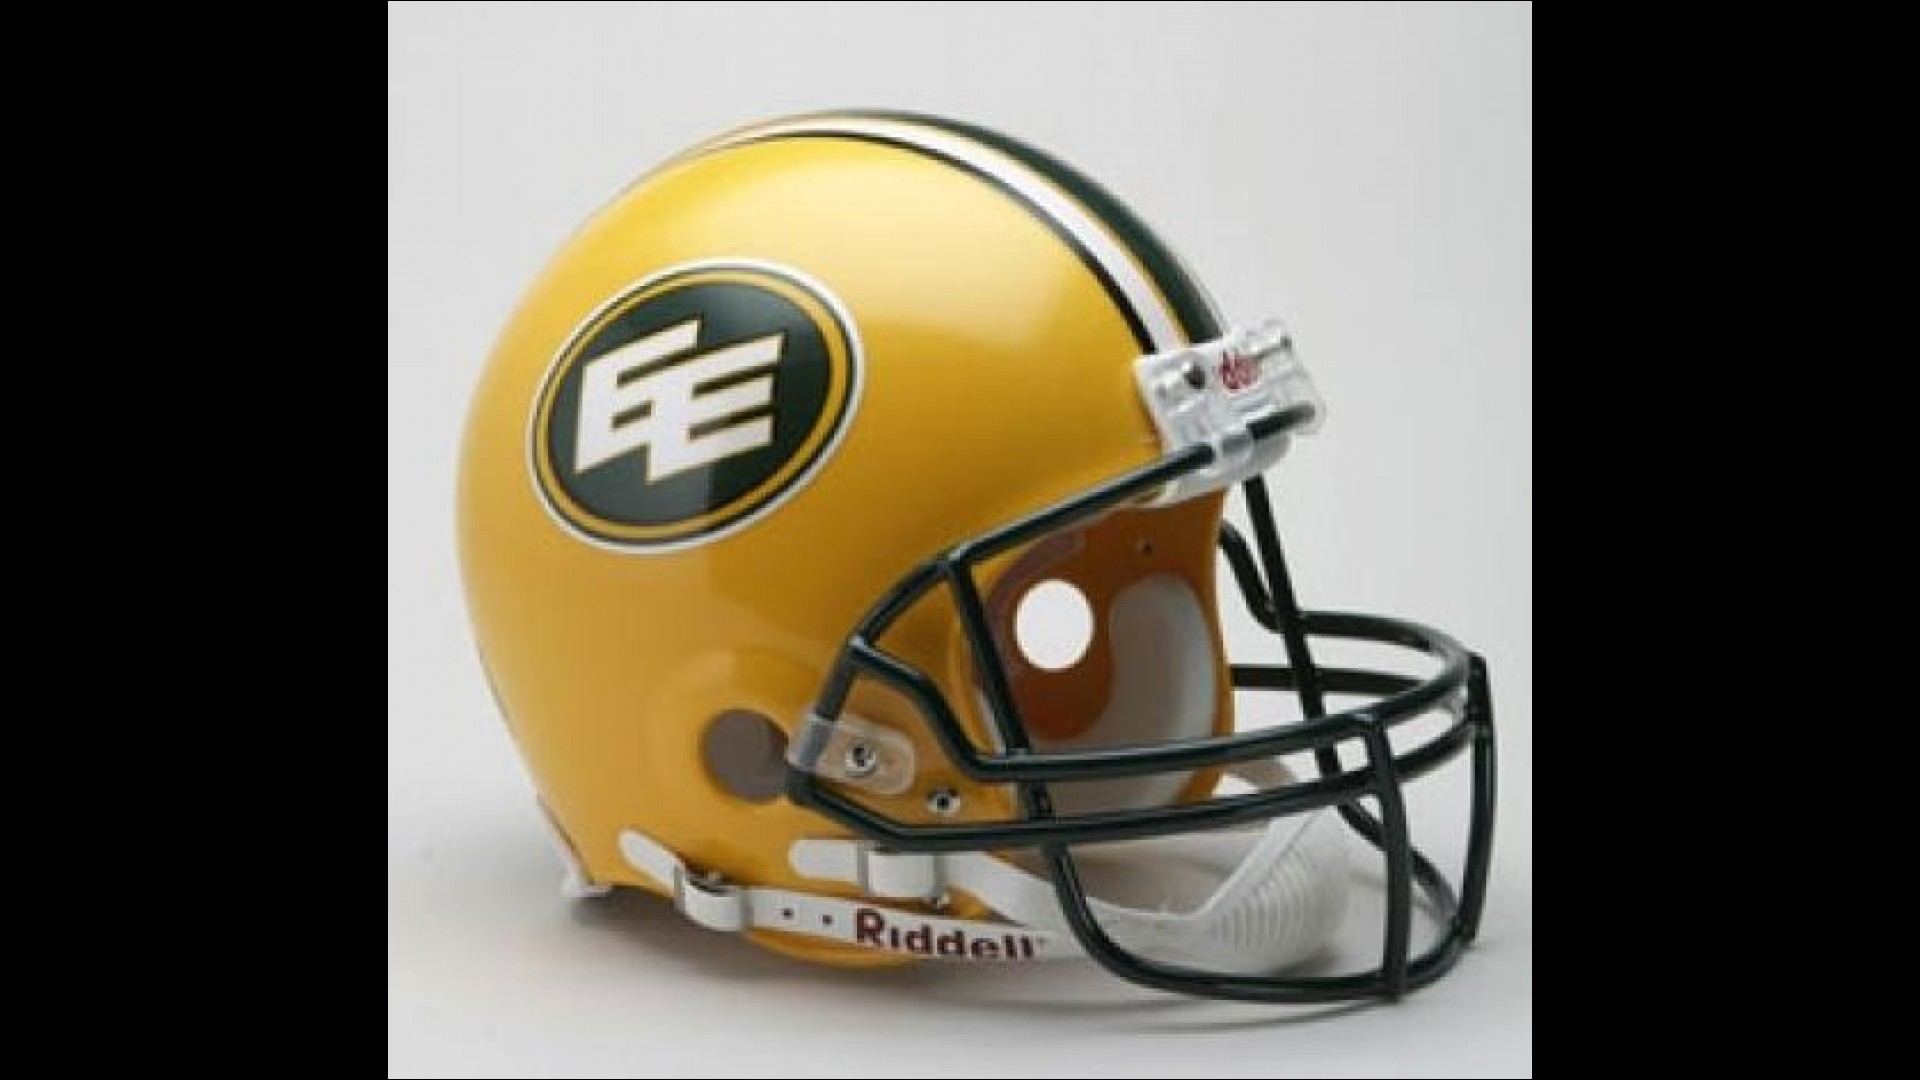 EDMONTON ESKIMOS' JACKPOT TO CARRY OVER